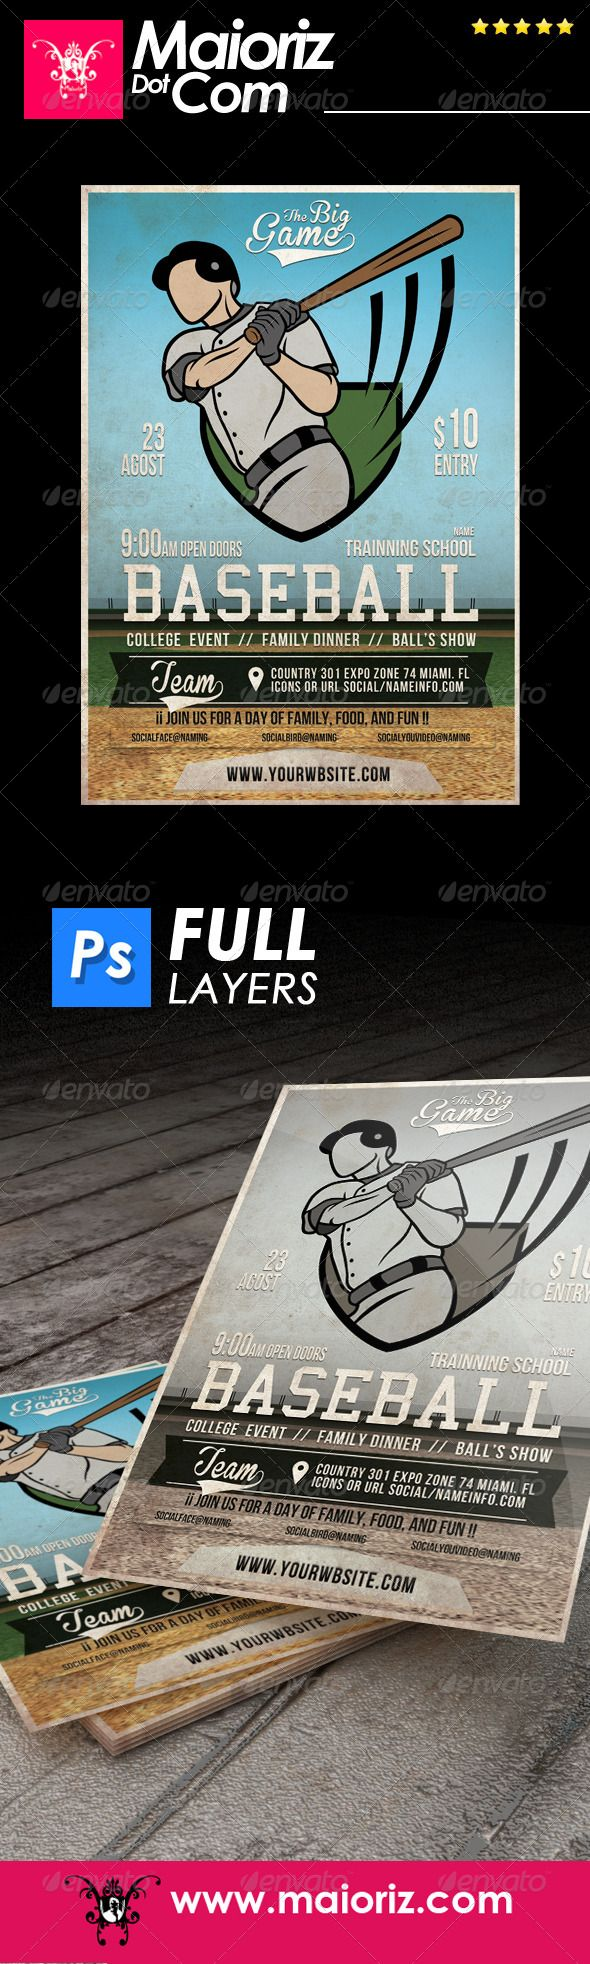 Indie Baseball Flyer By Maioriz Blackboard Style Best Design